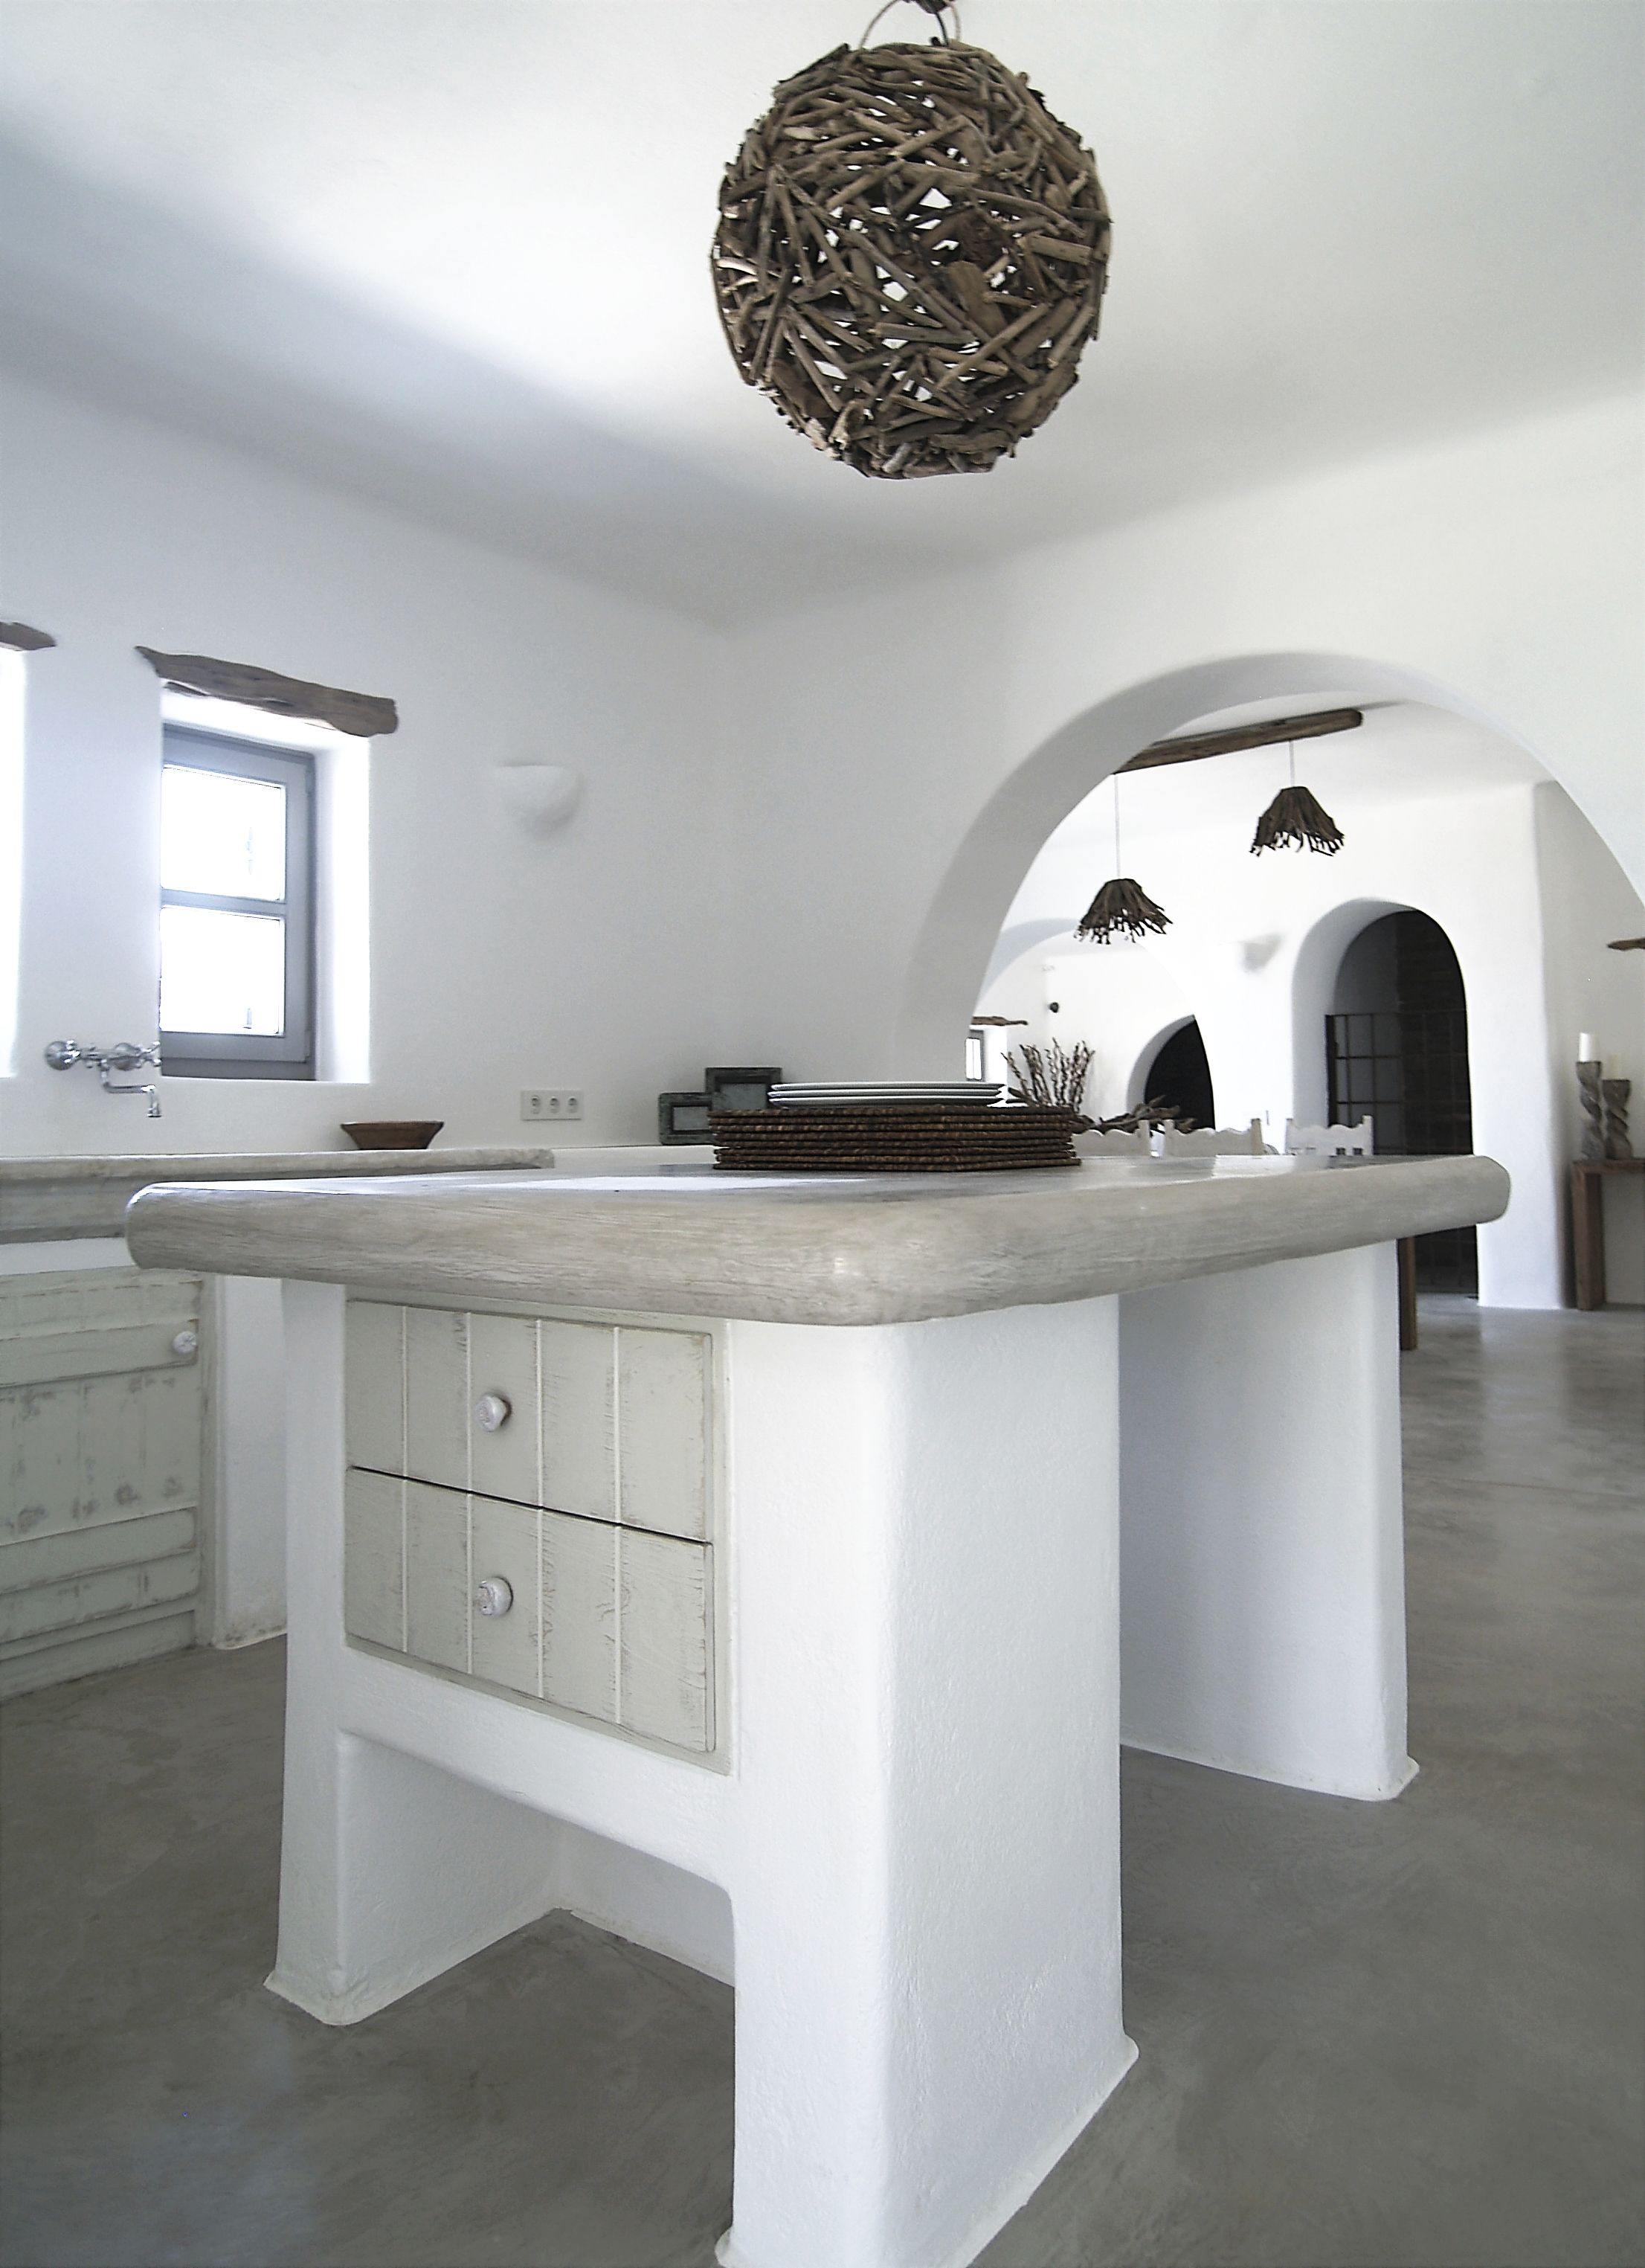 Paros Greece. Kitchen Island Cement Mortar